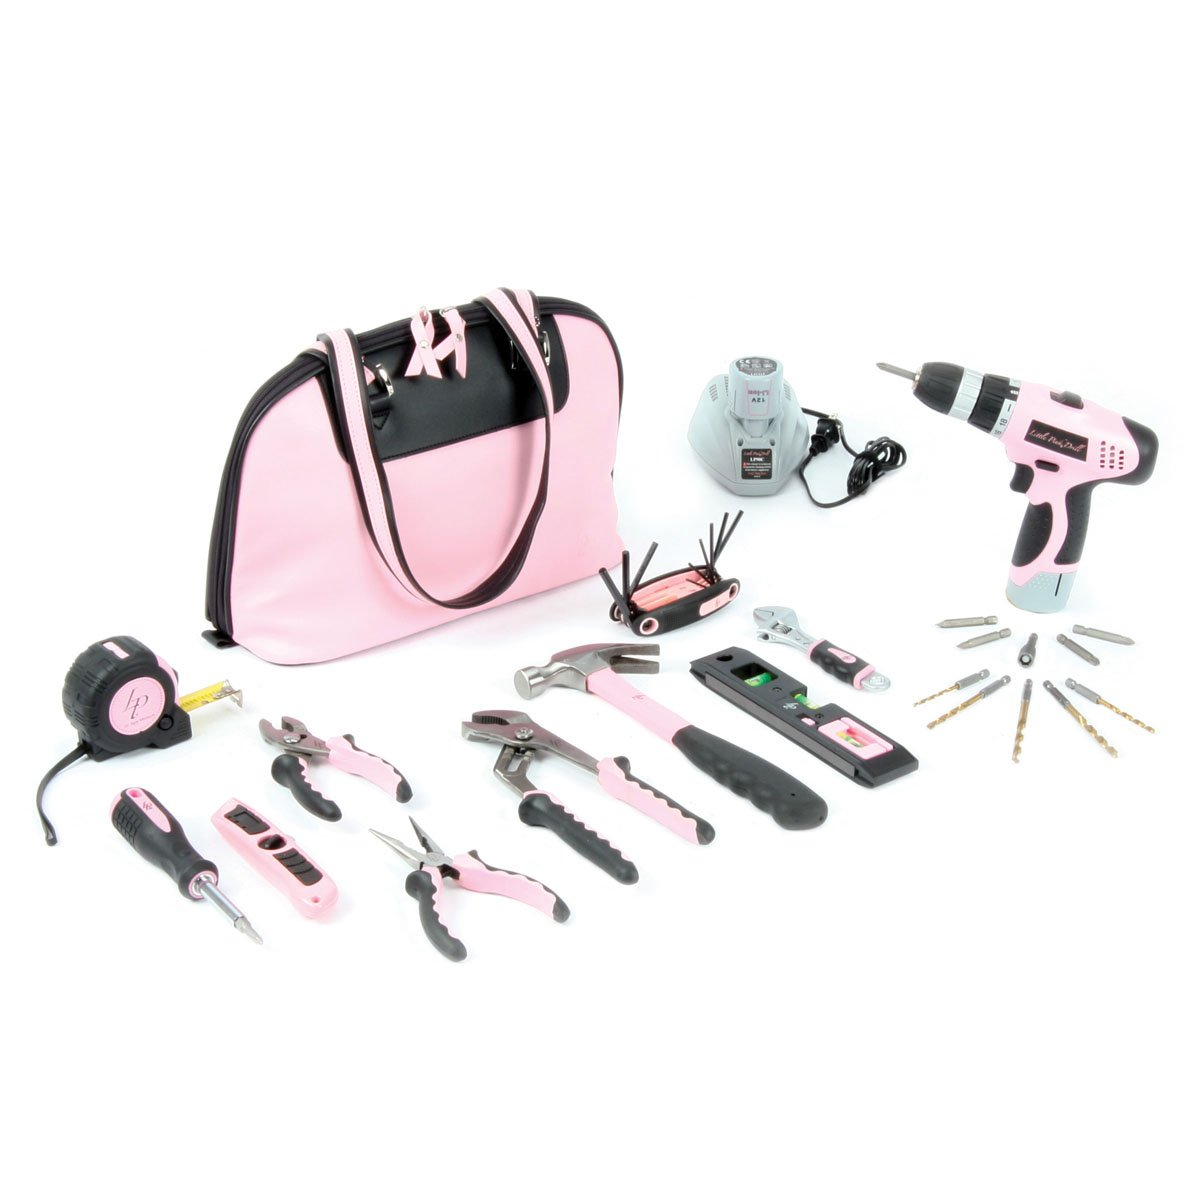 Little Pink Tool Kit and Drill Combo by Little Pink